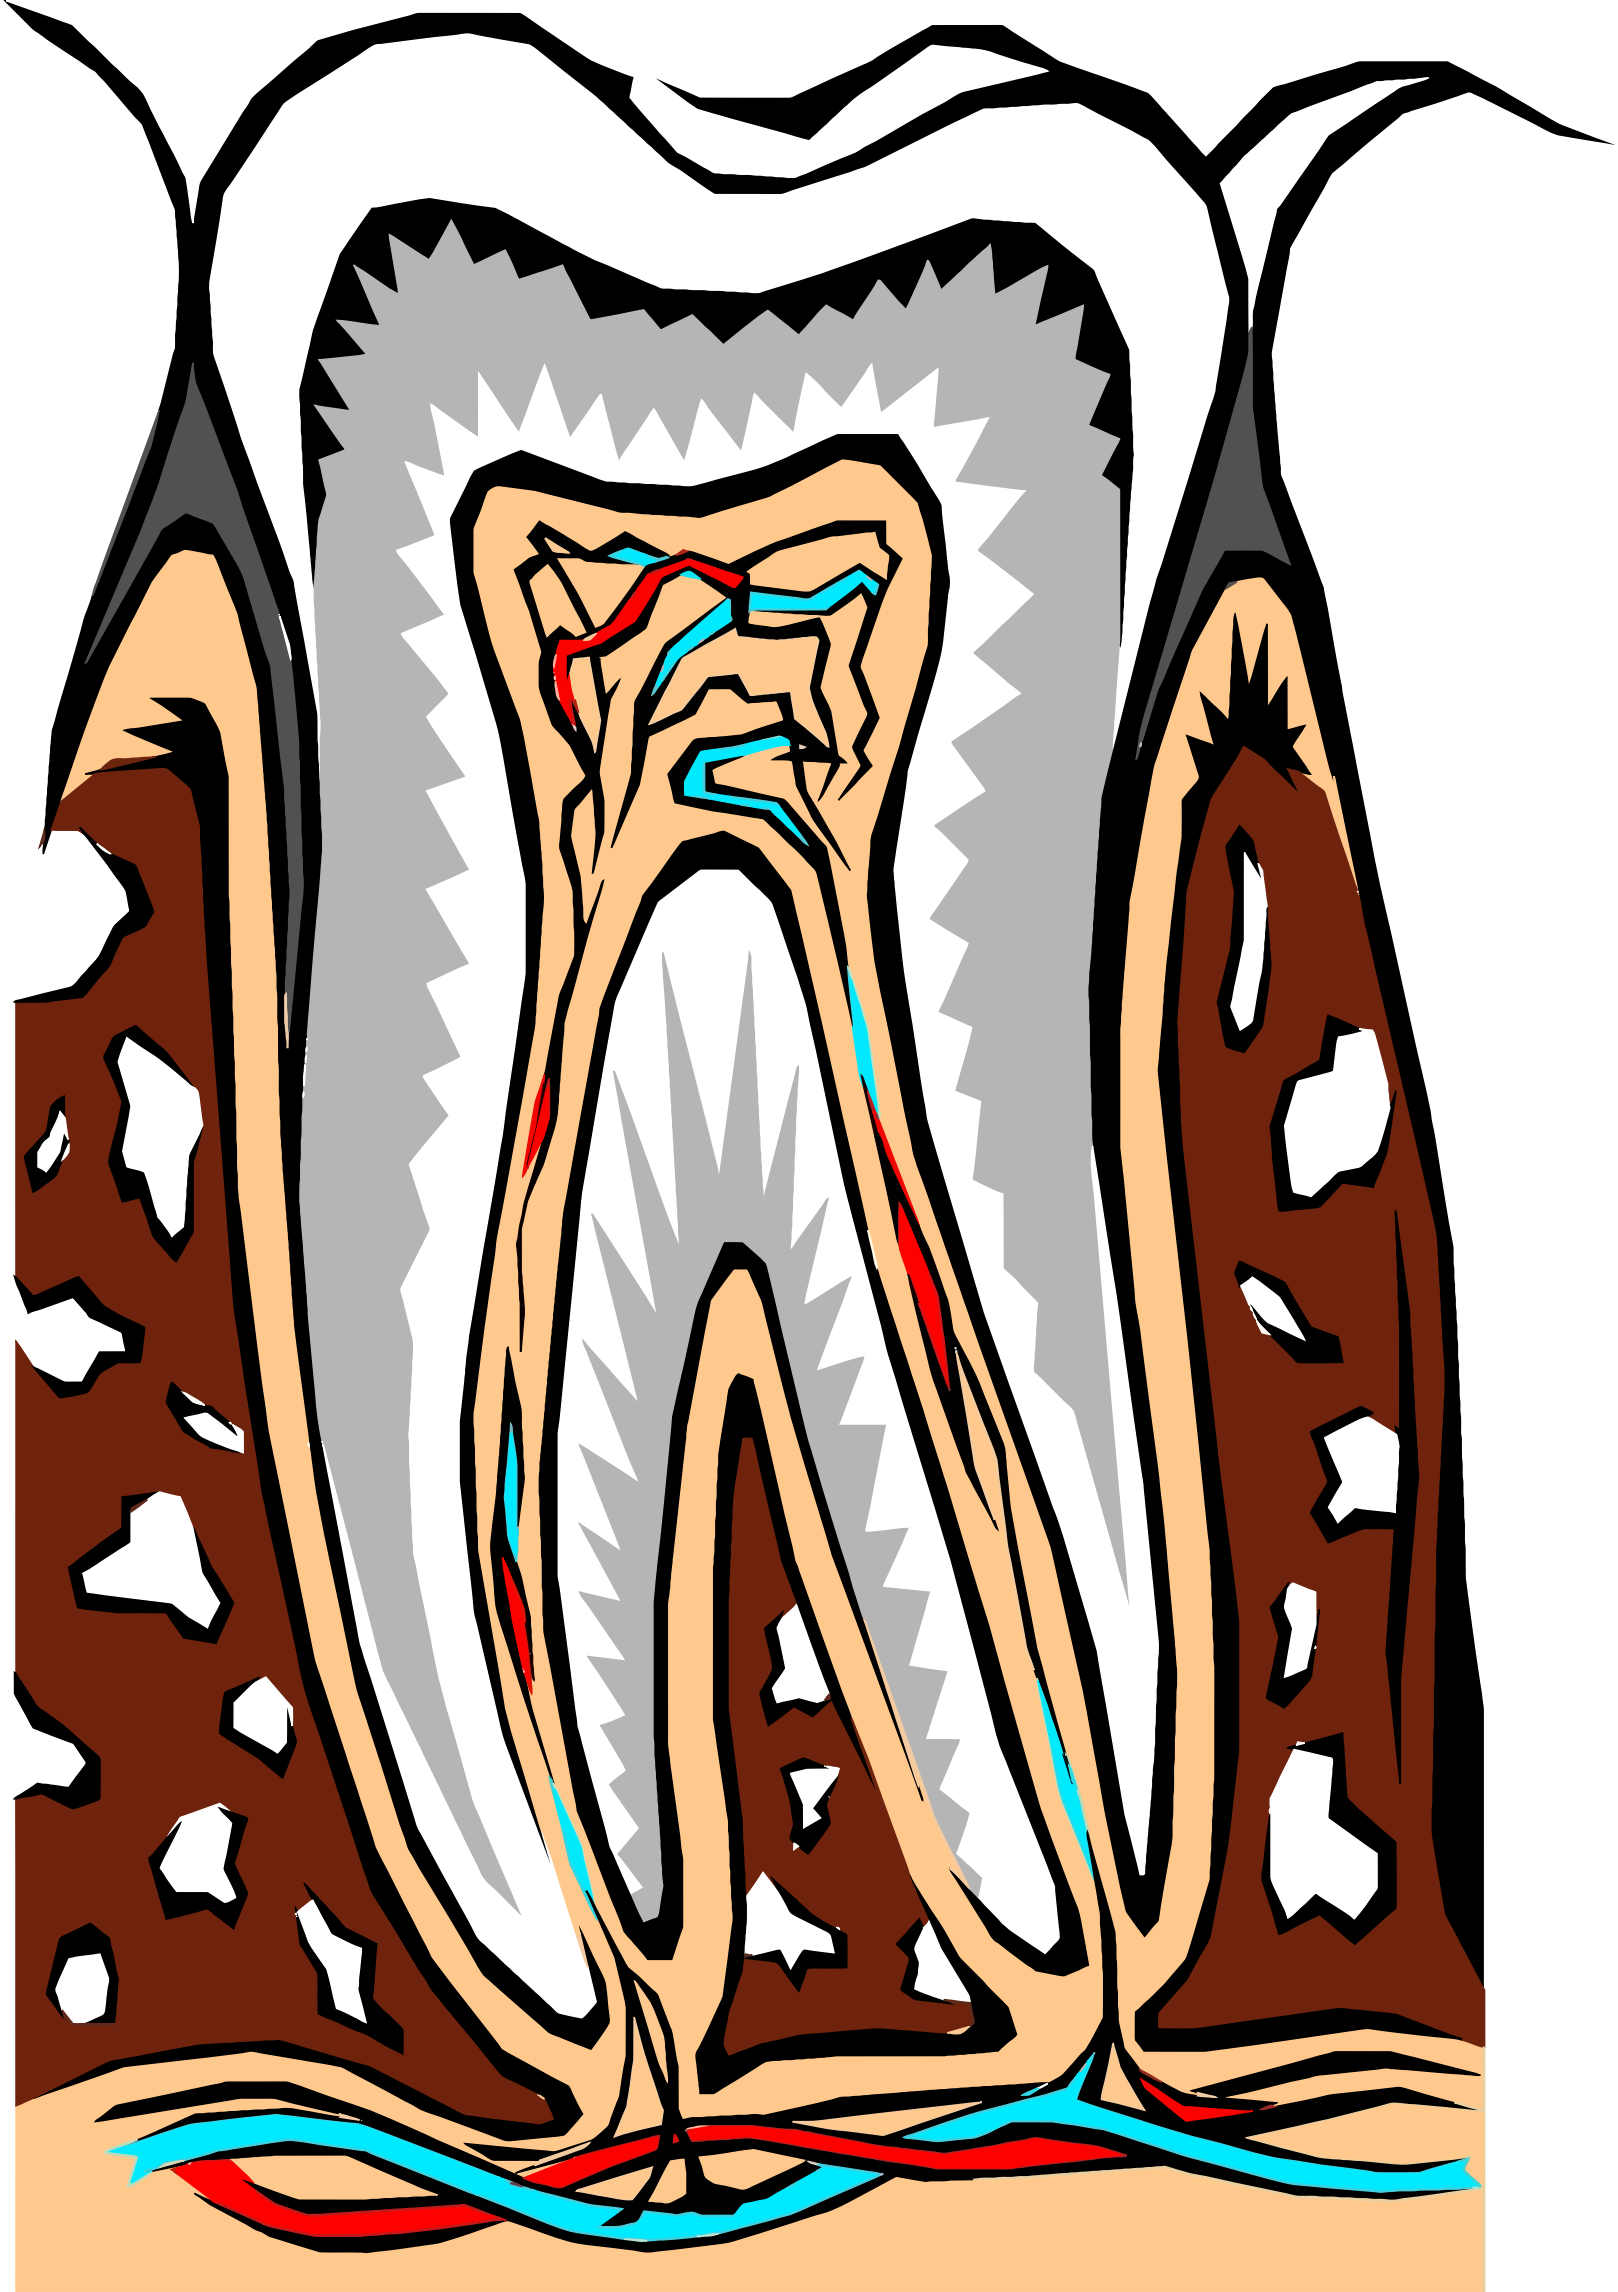 Tooth Cross Section Illustration by GDJ